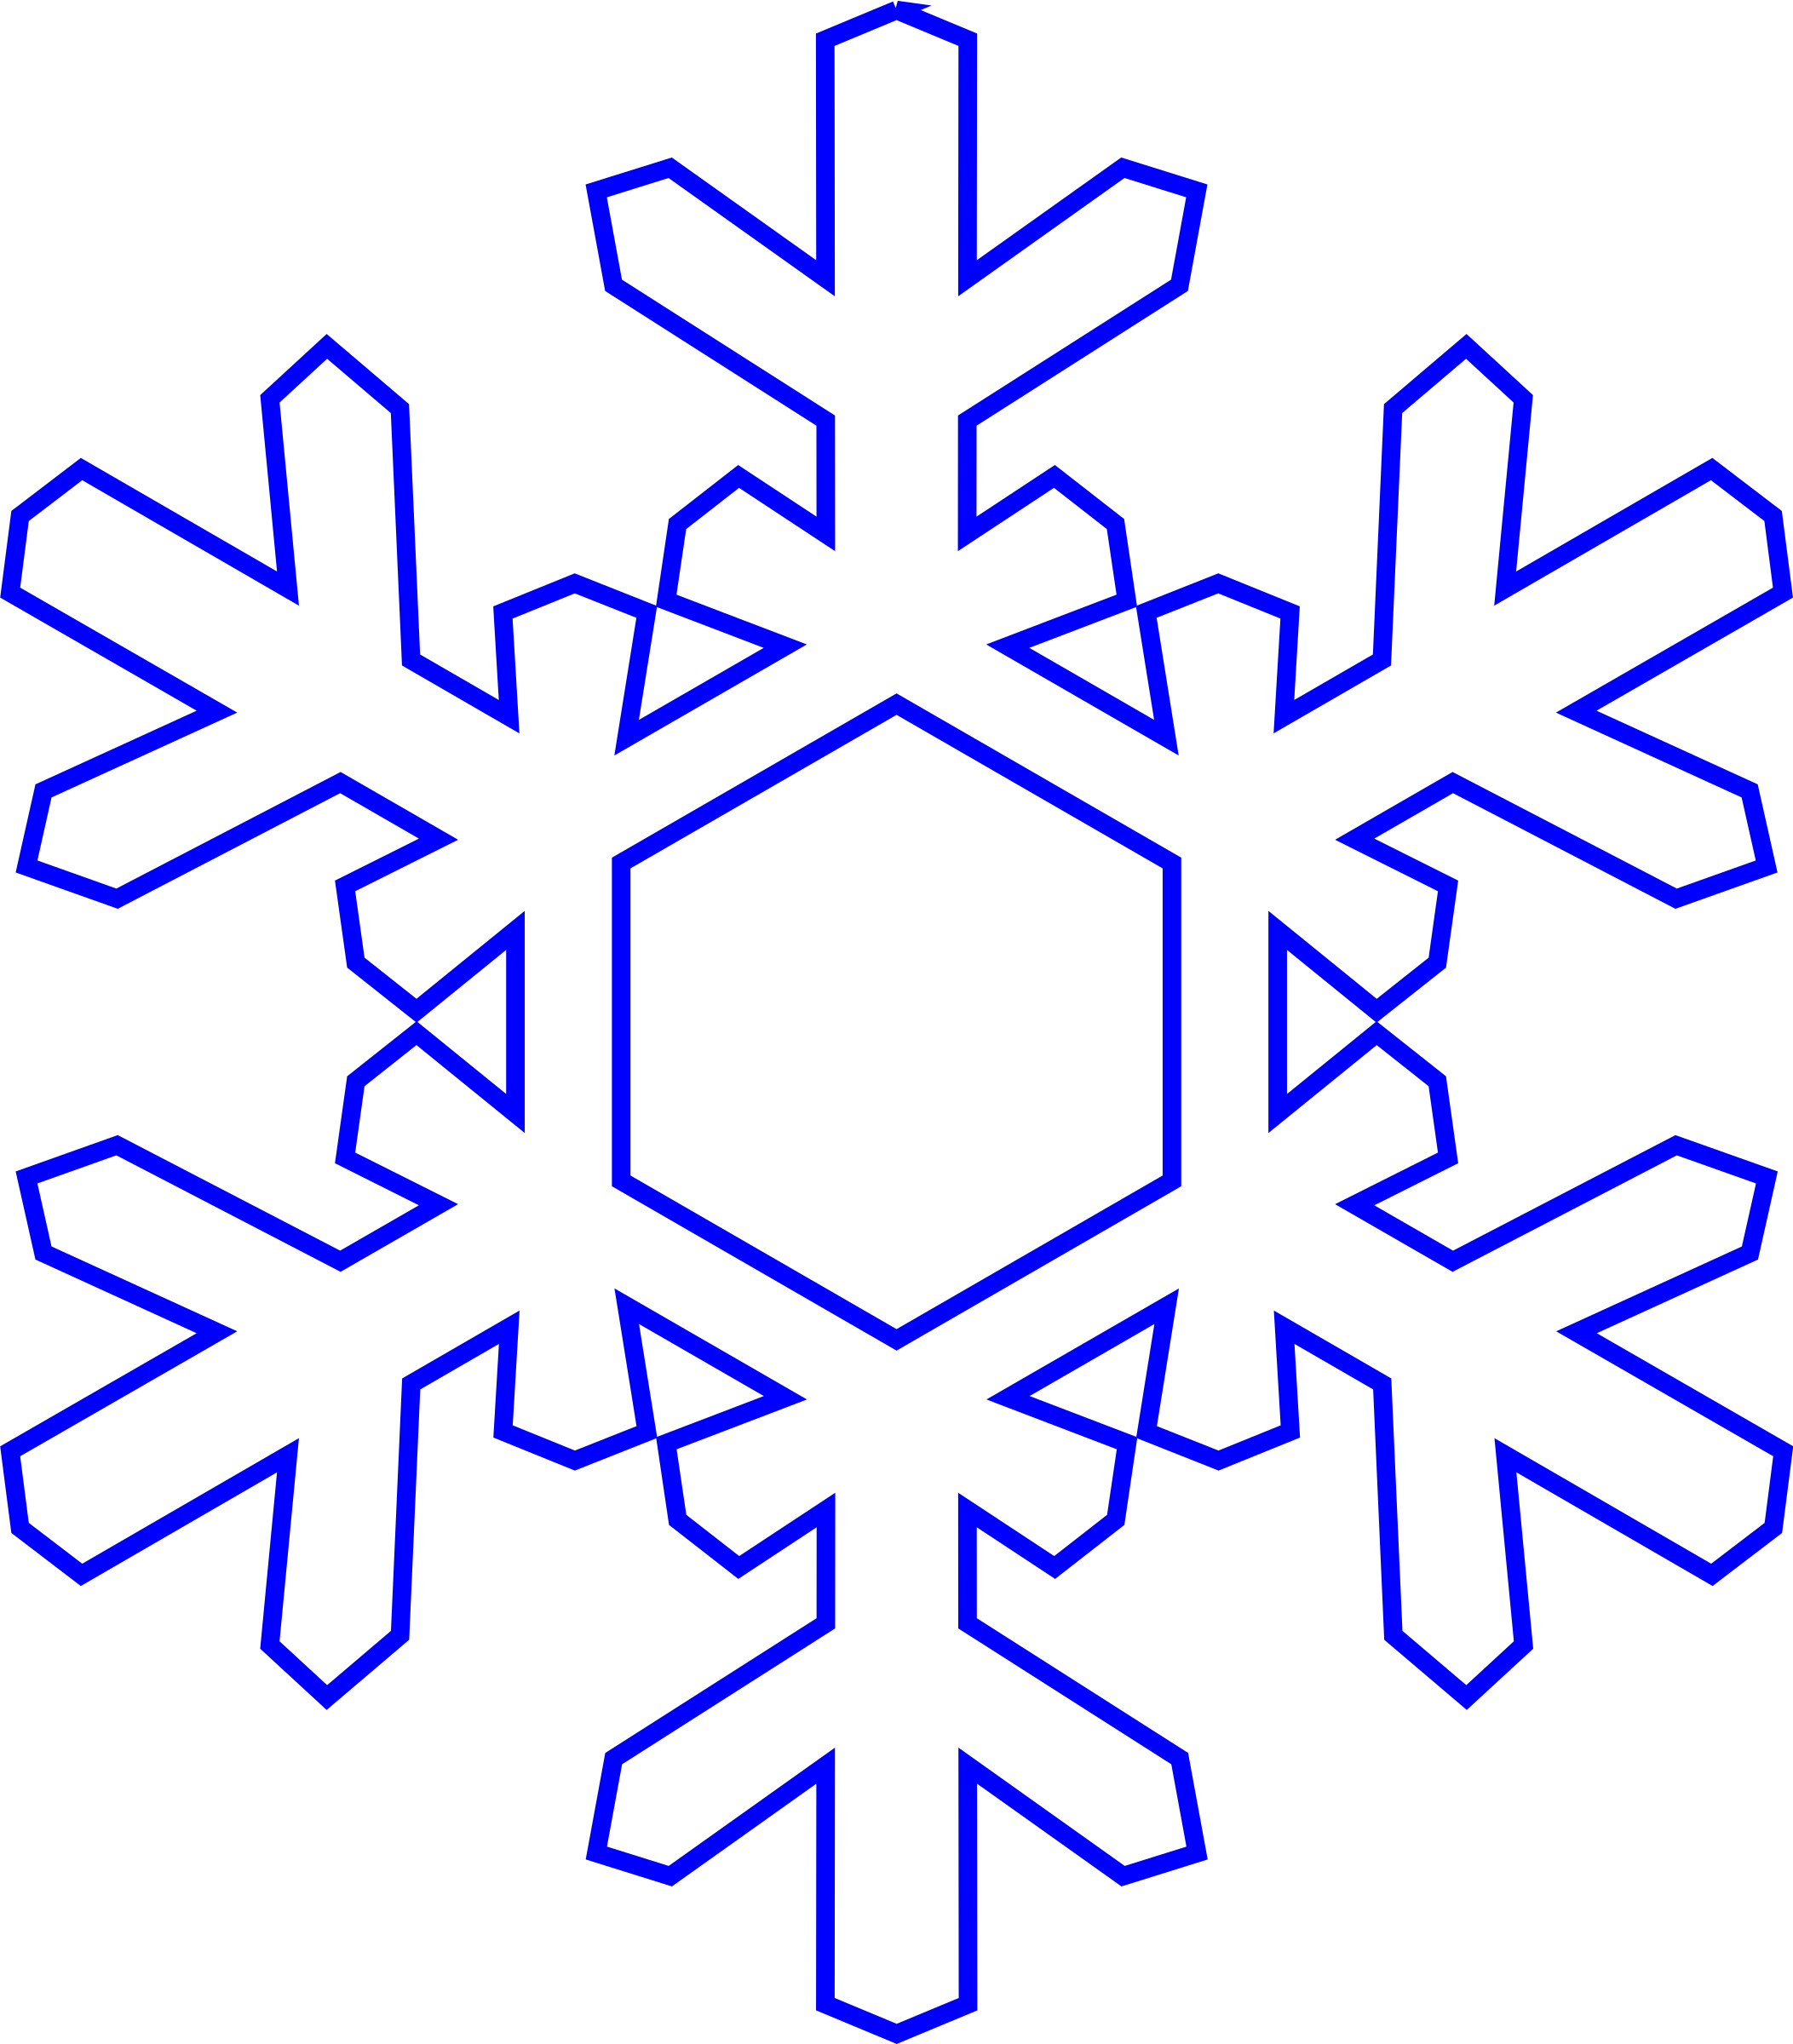 Clipart of simple snowflake svg transparent library 32++ Beauty Snowflake Clipart Transparent svg transparent library